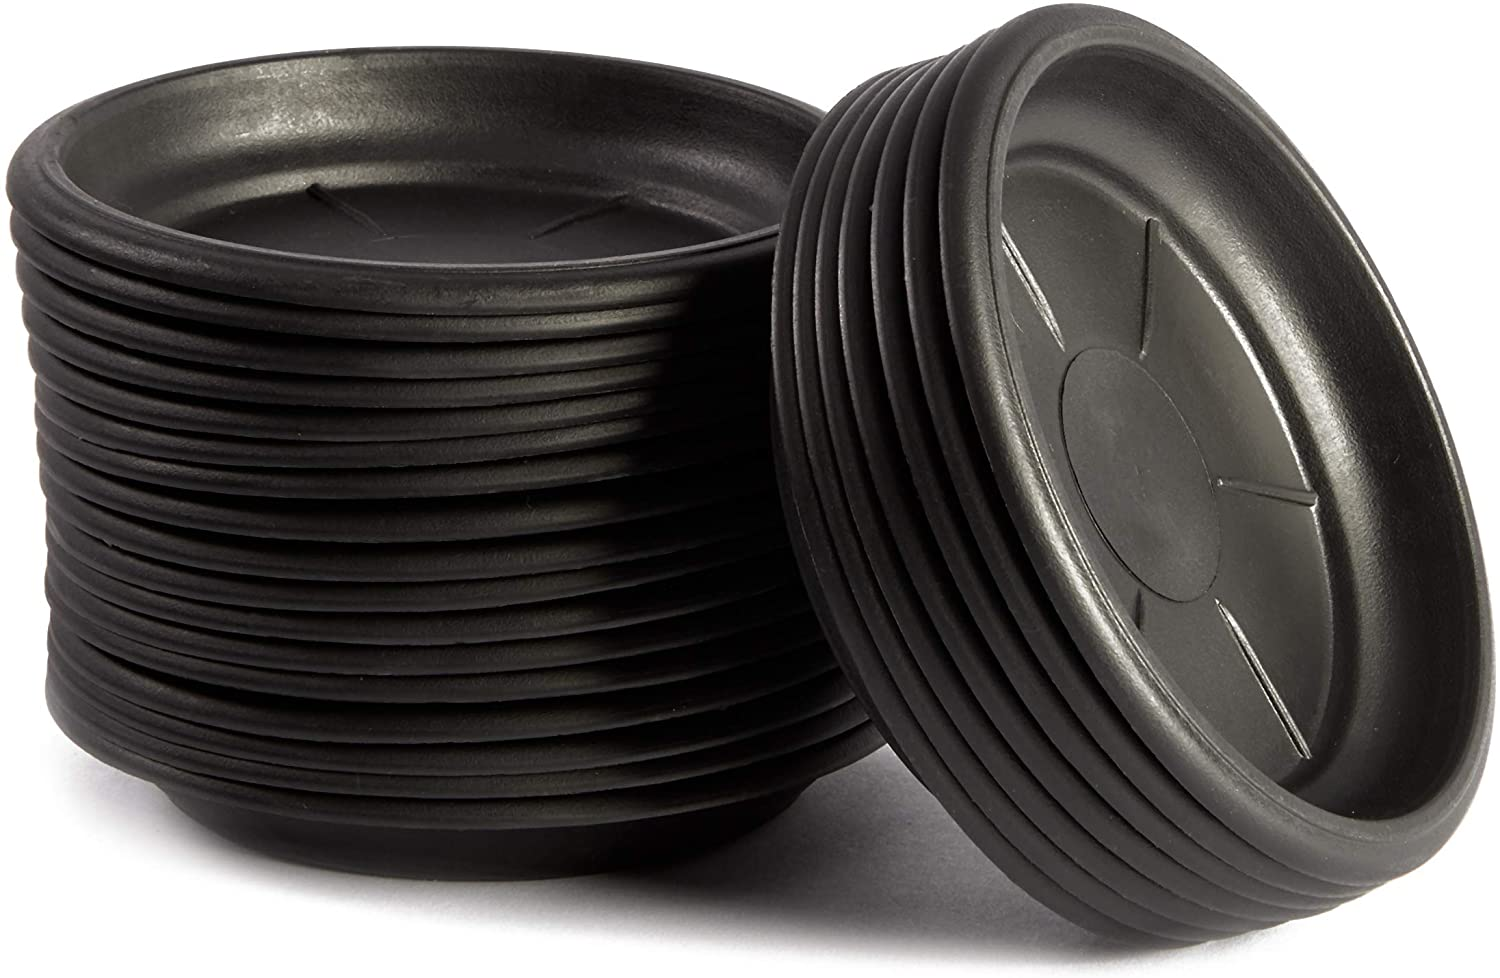 Juvale Round Plant Trays (4 in, Black, 24 Pack)